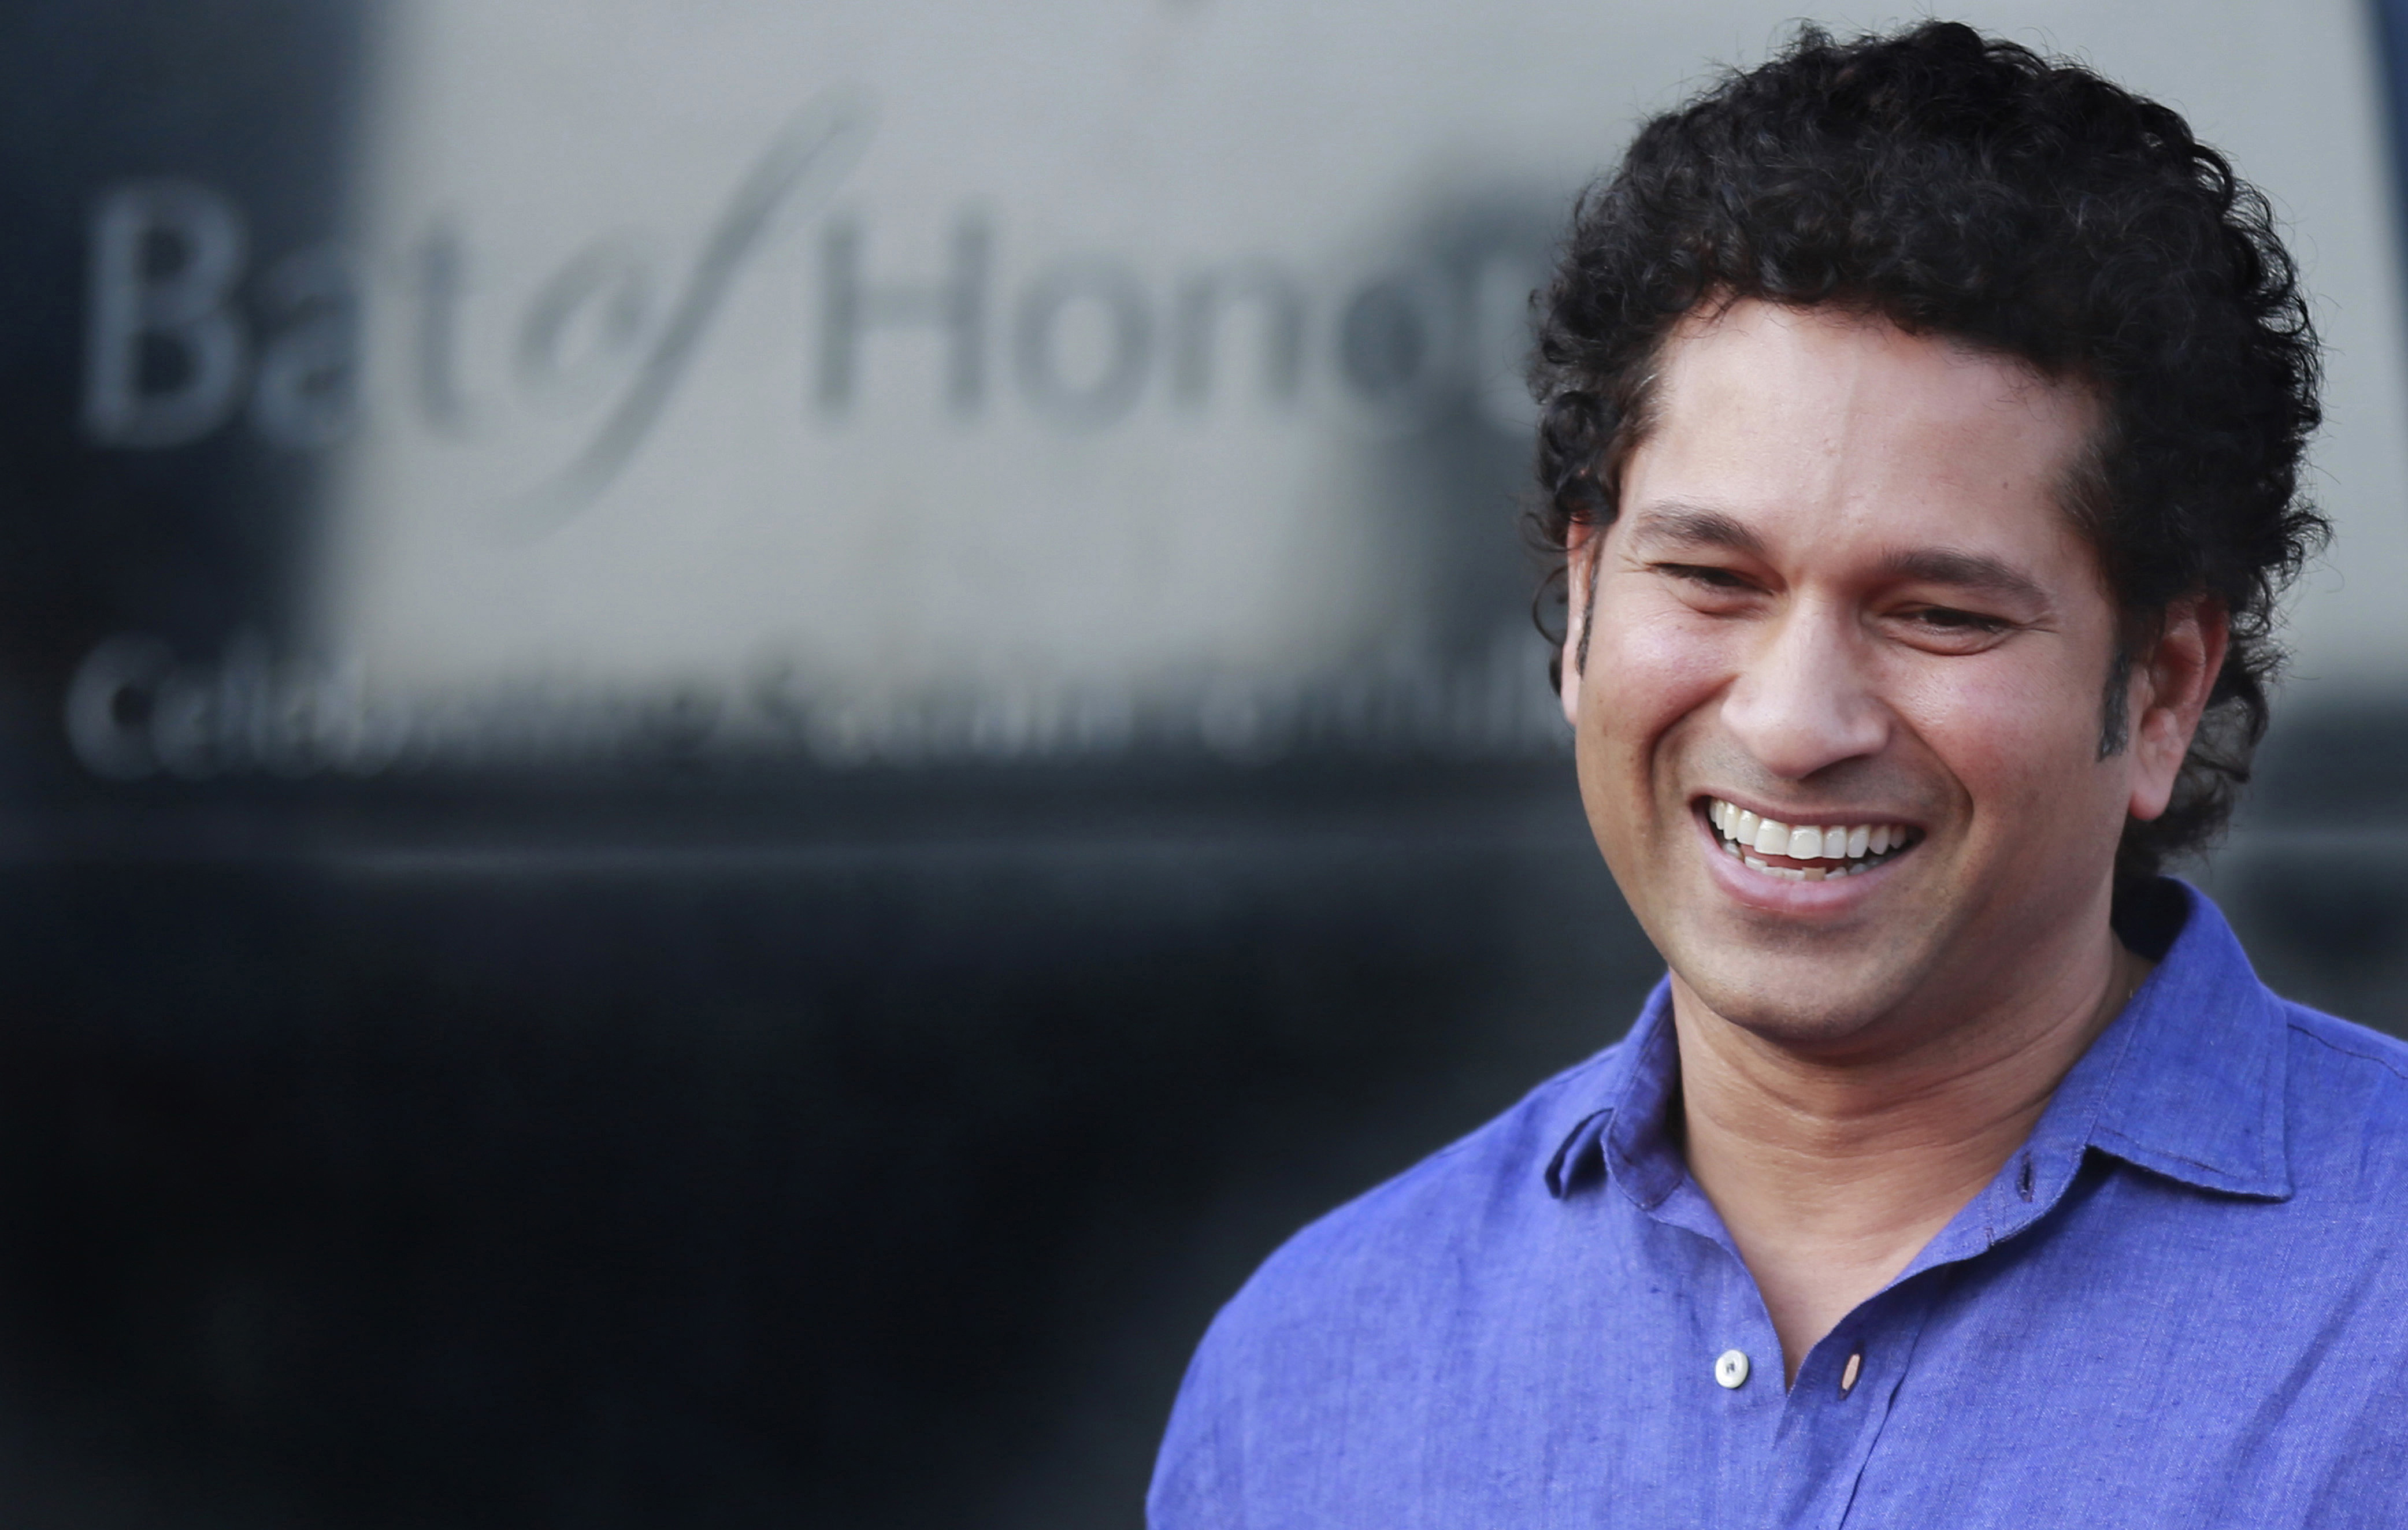 download sachin tendulkar cute smile face look mobile hd background pictures free